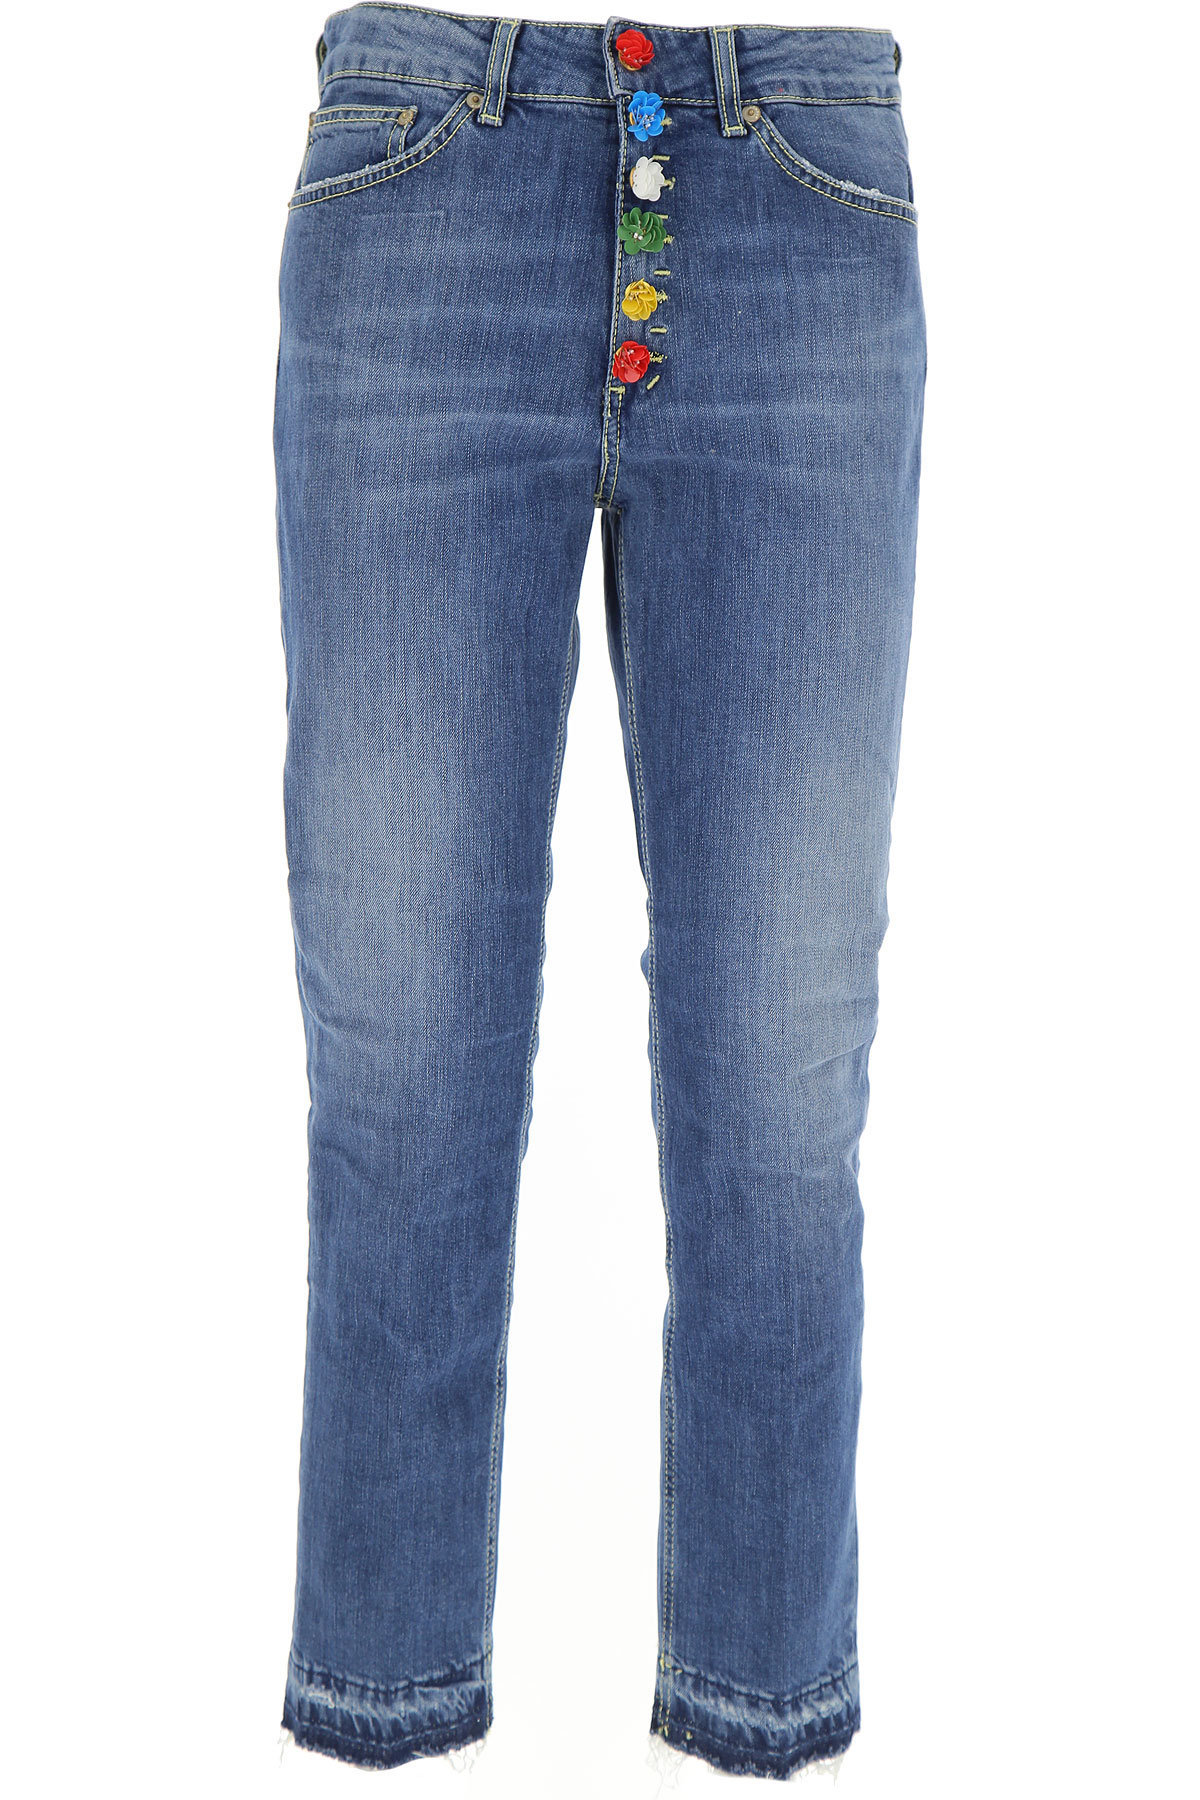 Dondup Jeans On Sale in Outlet, Denim, Cotton, 2017, 27 28 29 30 31 32